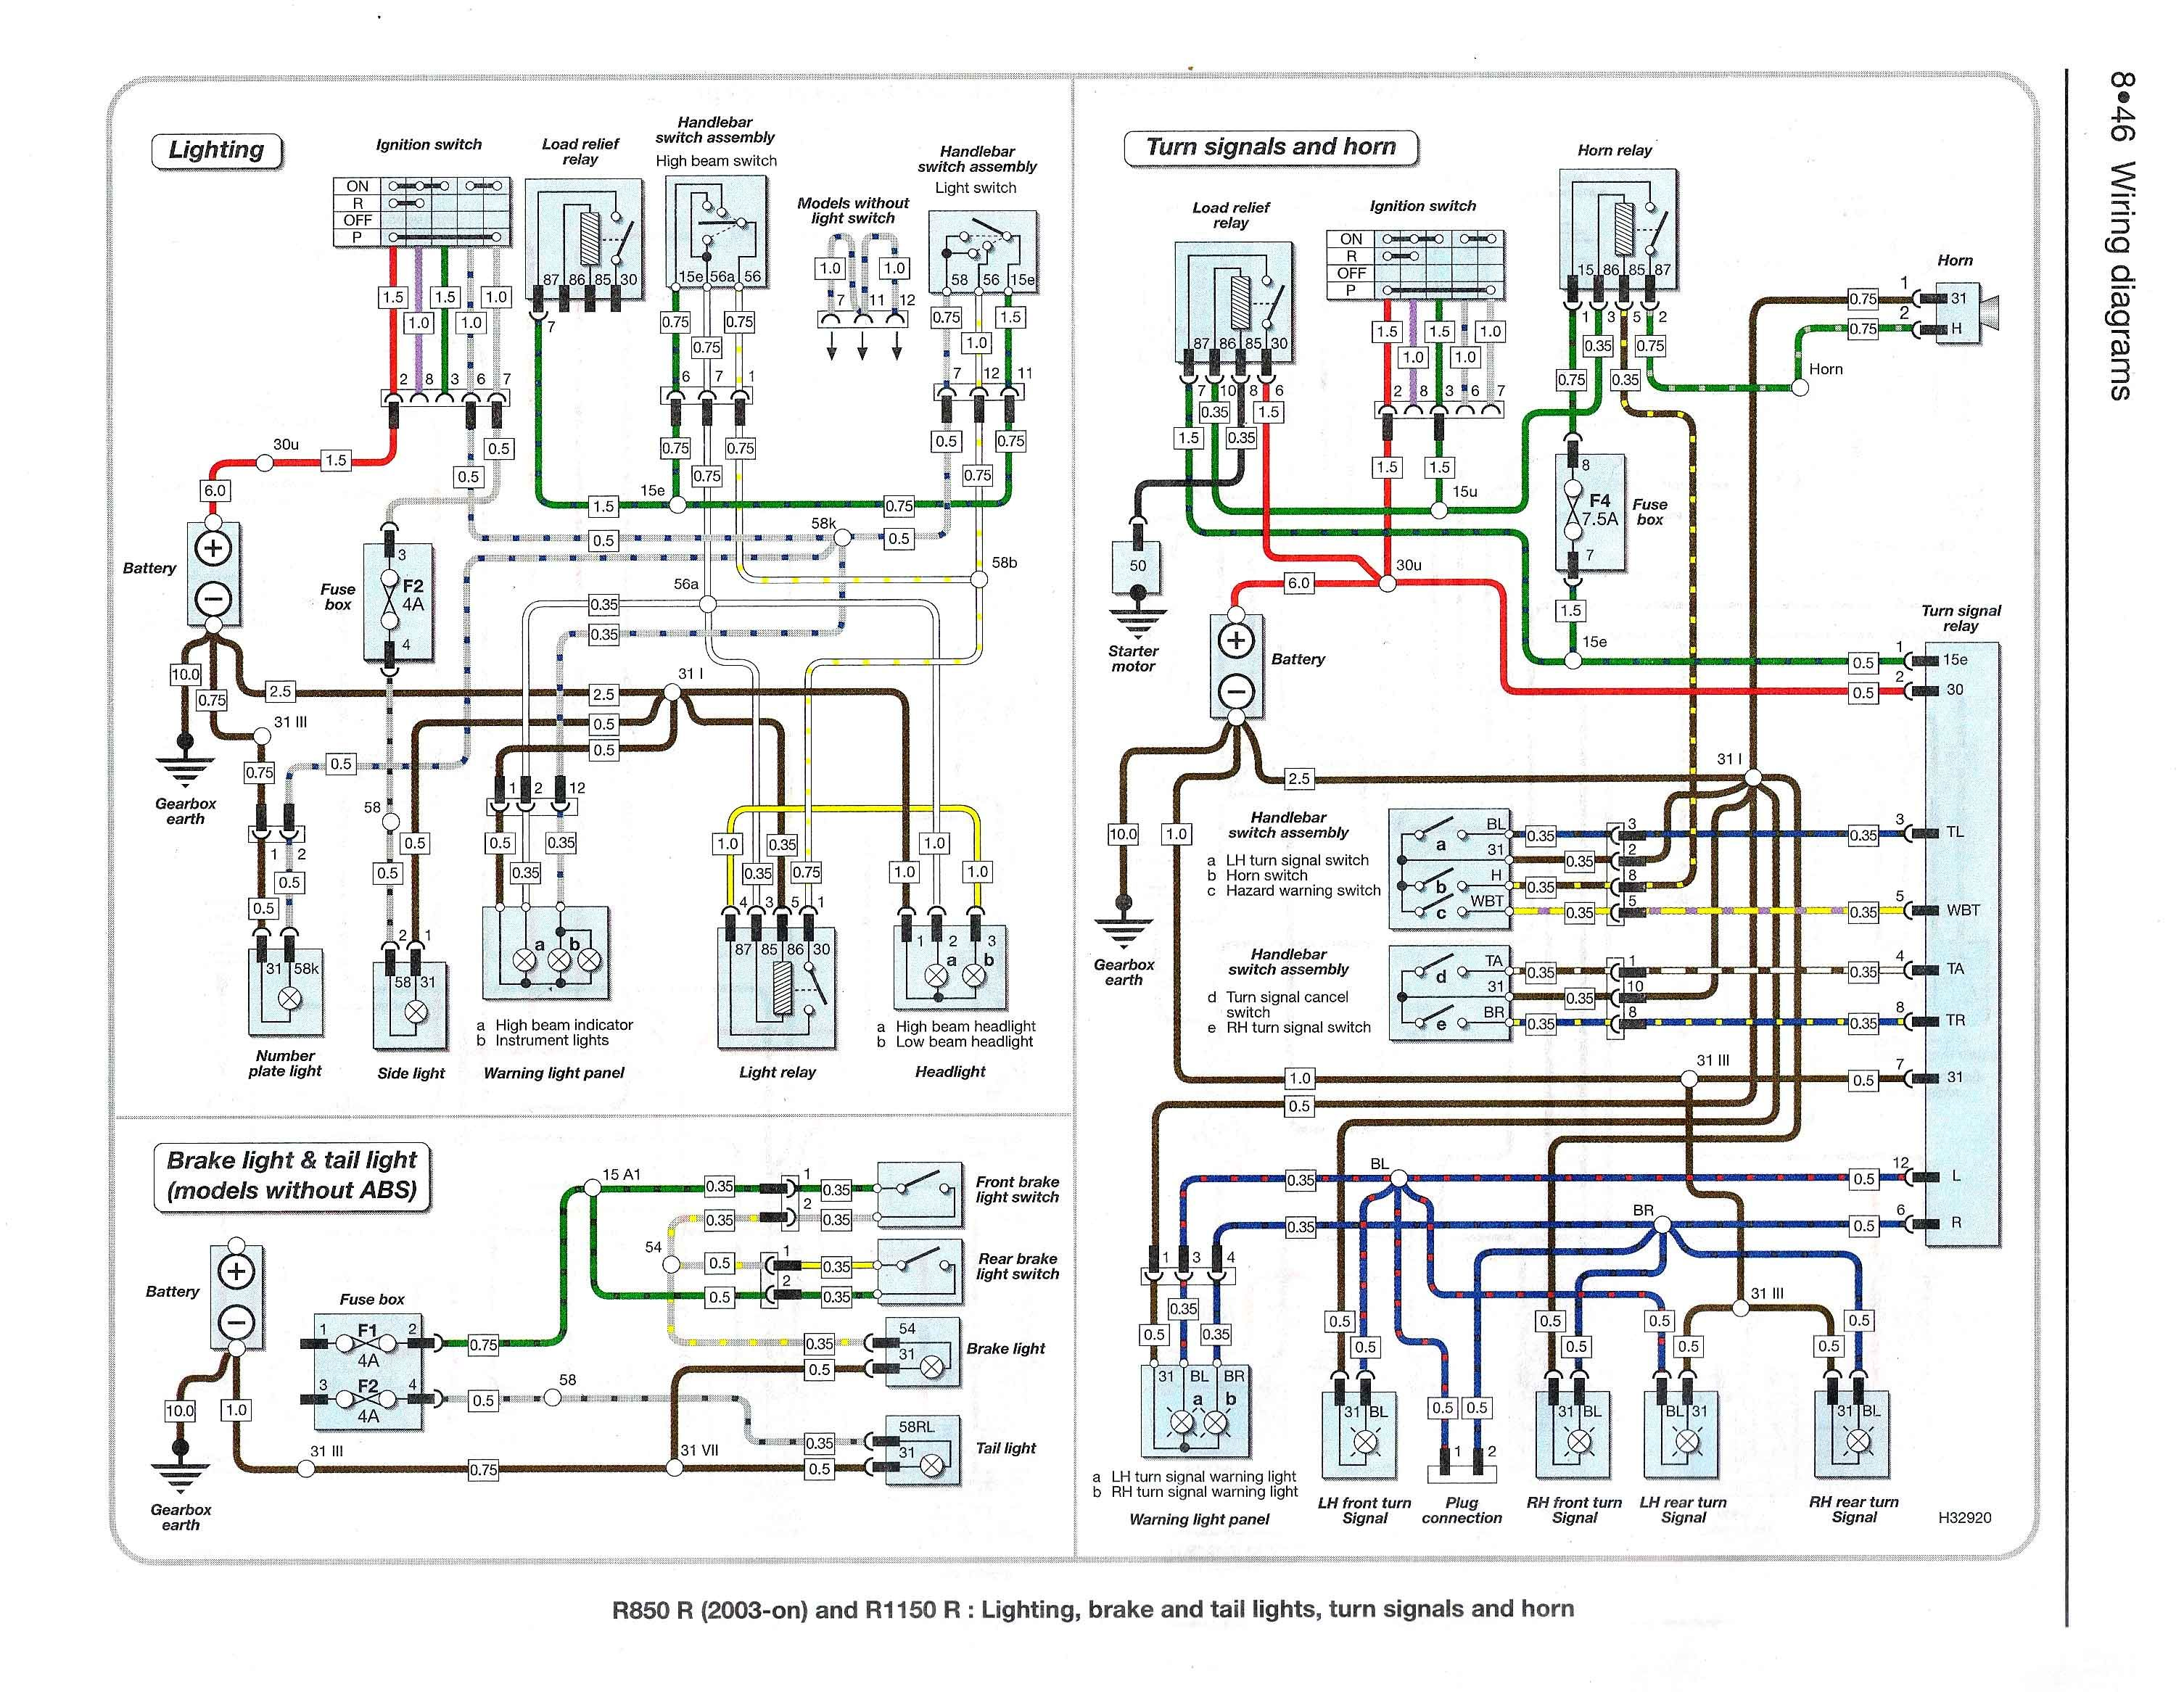 Click To Close Image Click And Drag To Move Use Arrow Keys For Next And Previous Schema Elettrico Schema